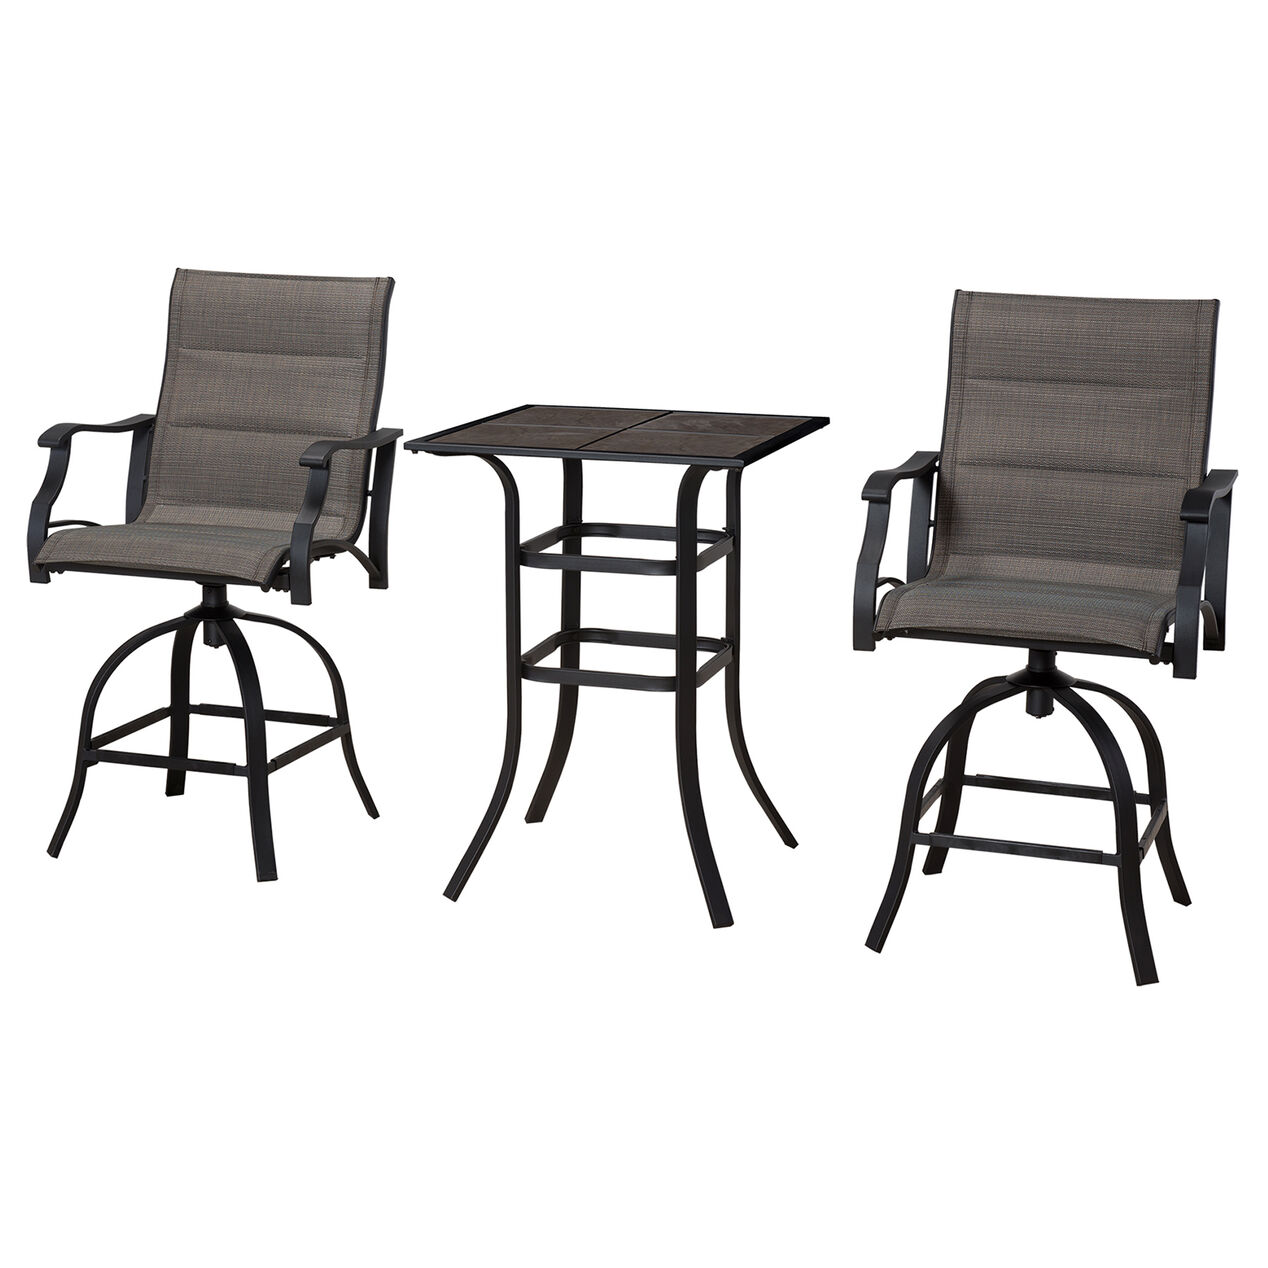 Malibu Bistro 3 Piece Chair And High Table Set At Home